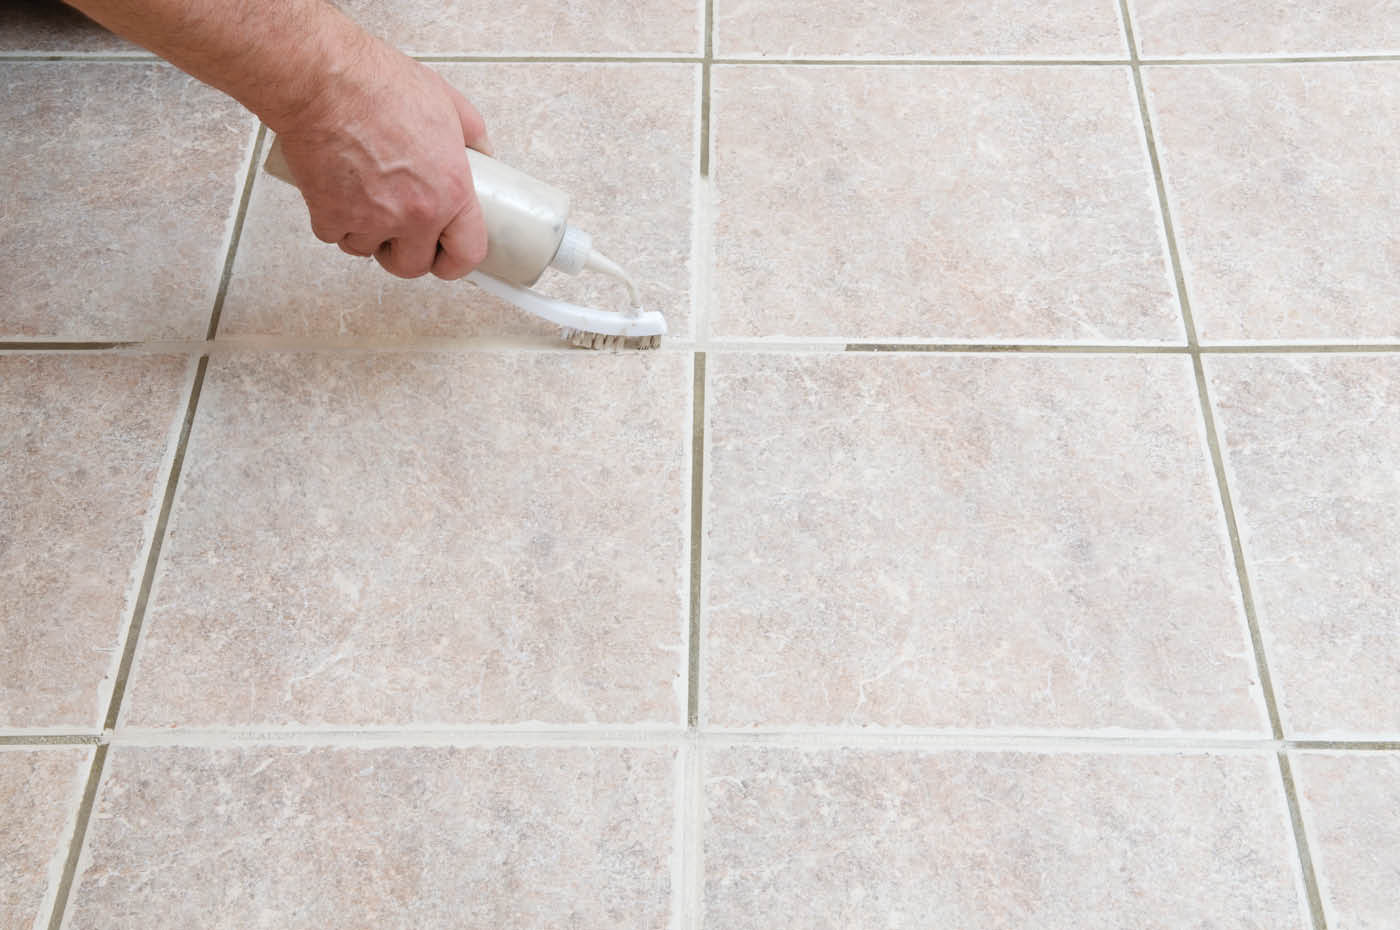 Simple routines to cleaning ceramic tile floors homesfeed cleaning ceramic tile floors grout cleaning with toothbrush for clean ceramic tile floors dailygadgetfo Choice Image